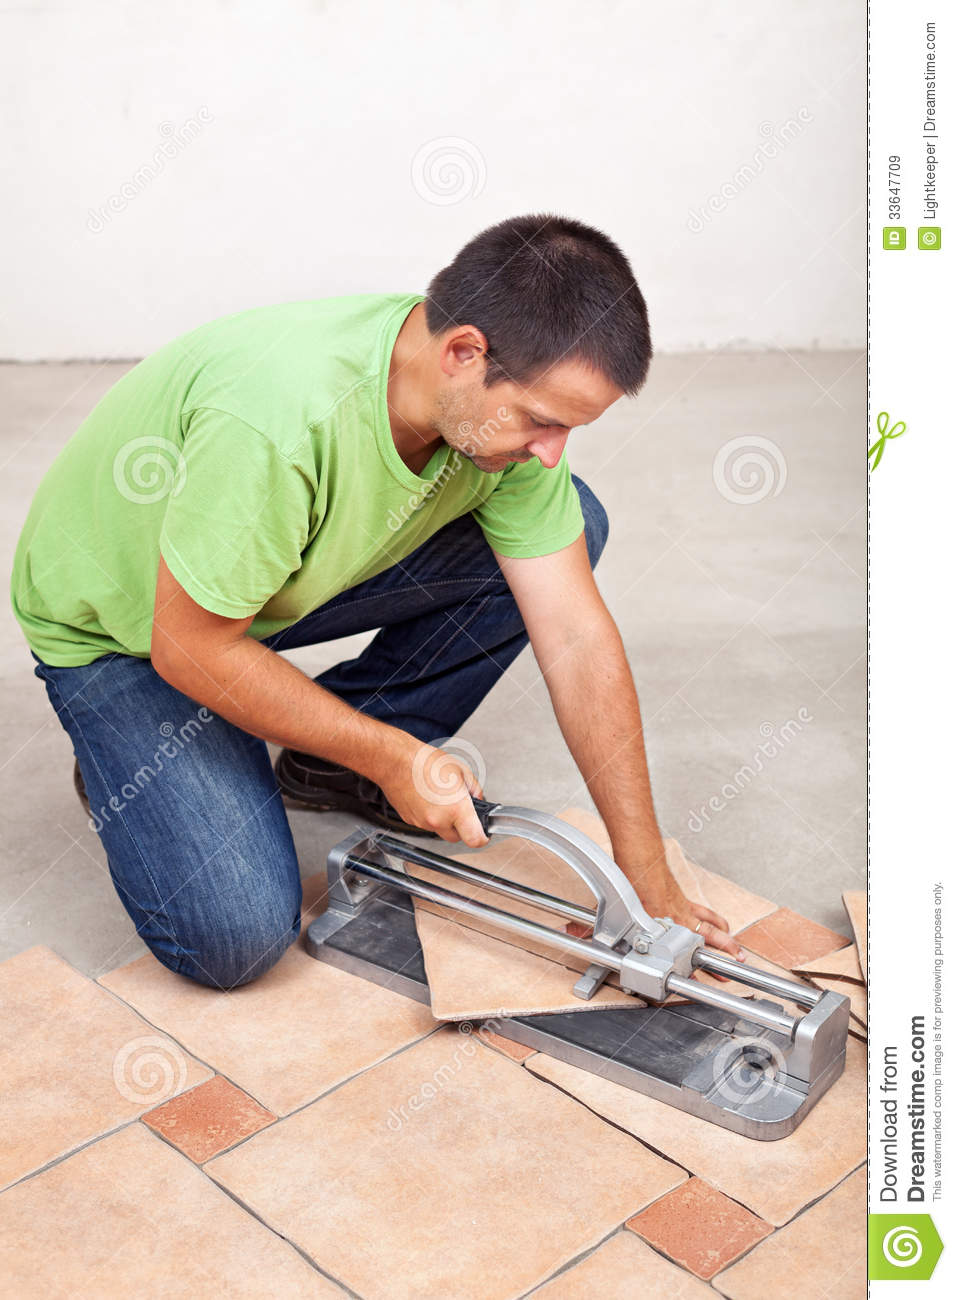 Man Cutting Floor Tiles Stock Image Image Of Home Material 33647709